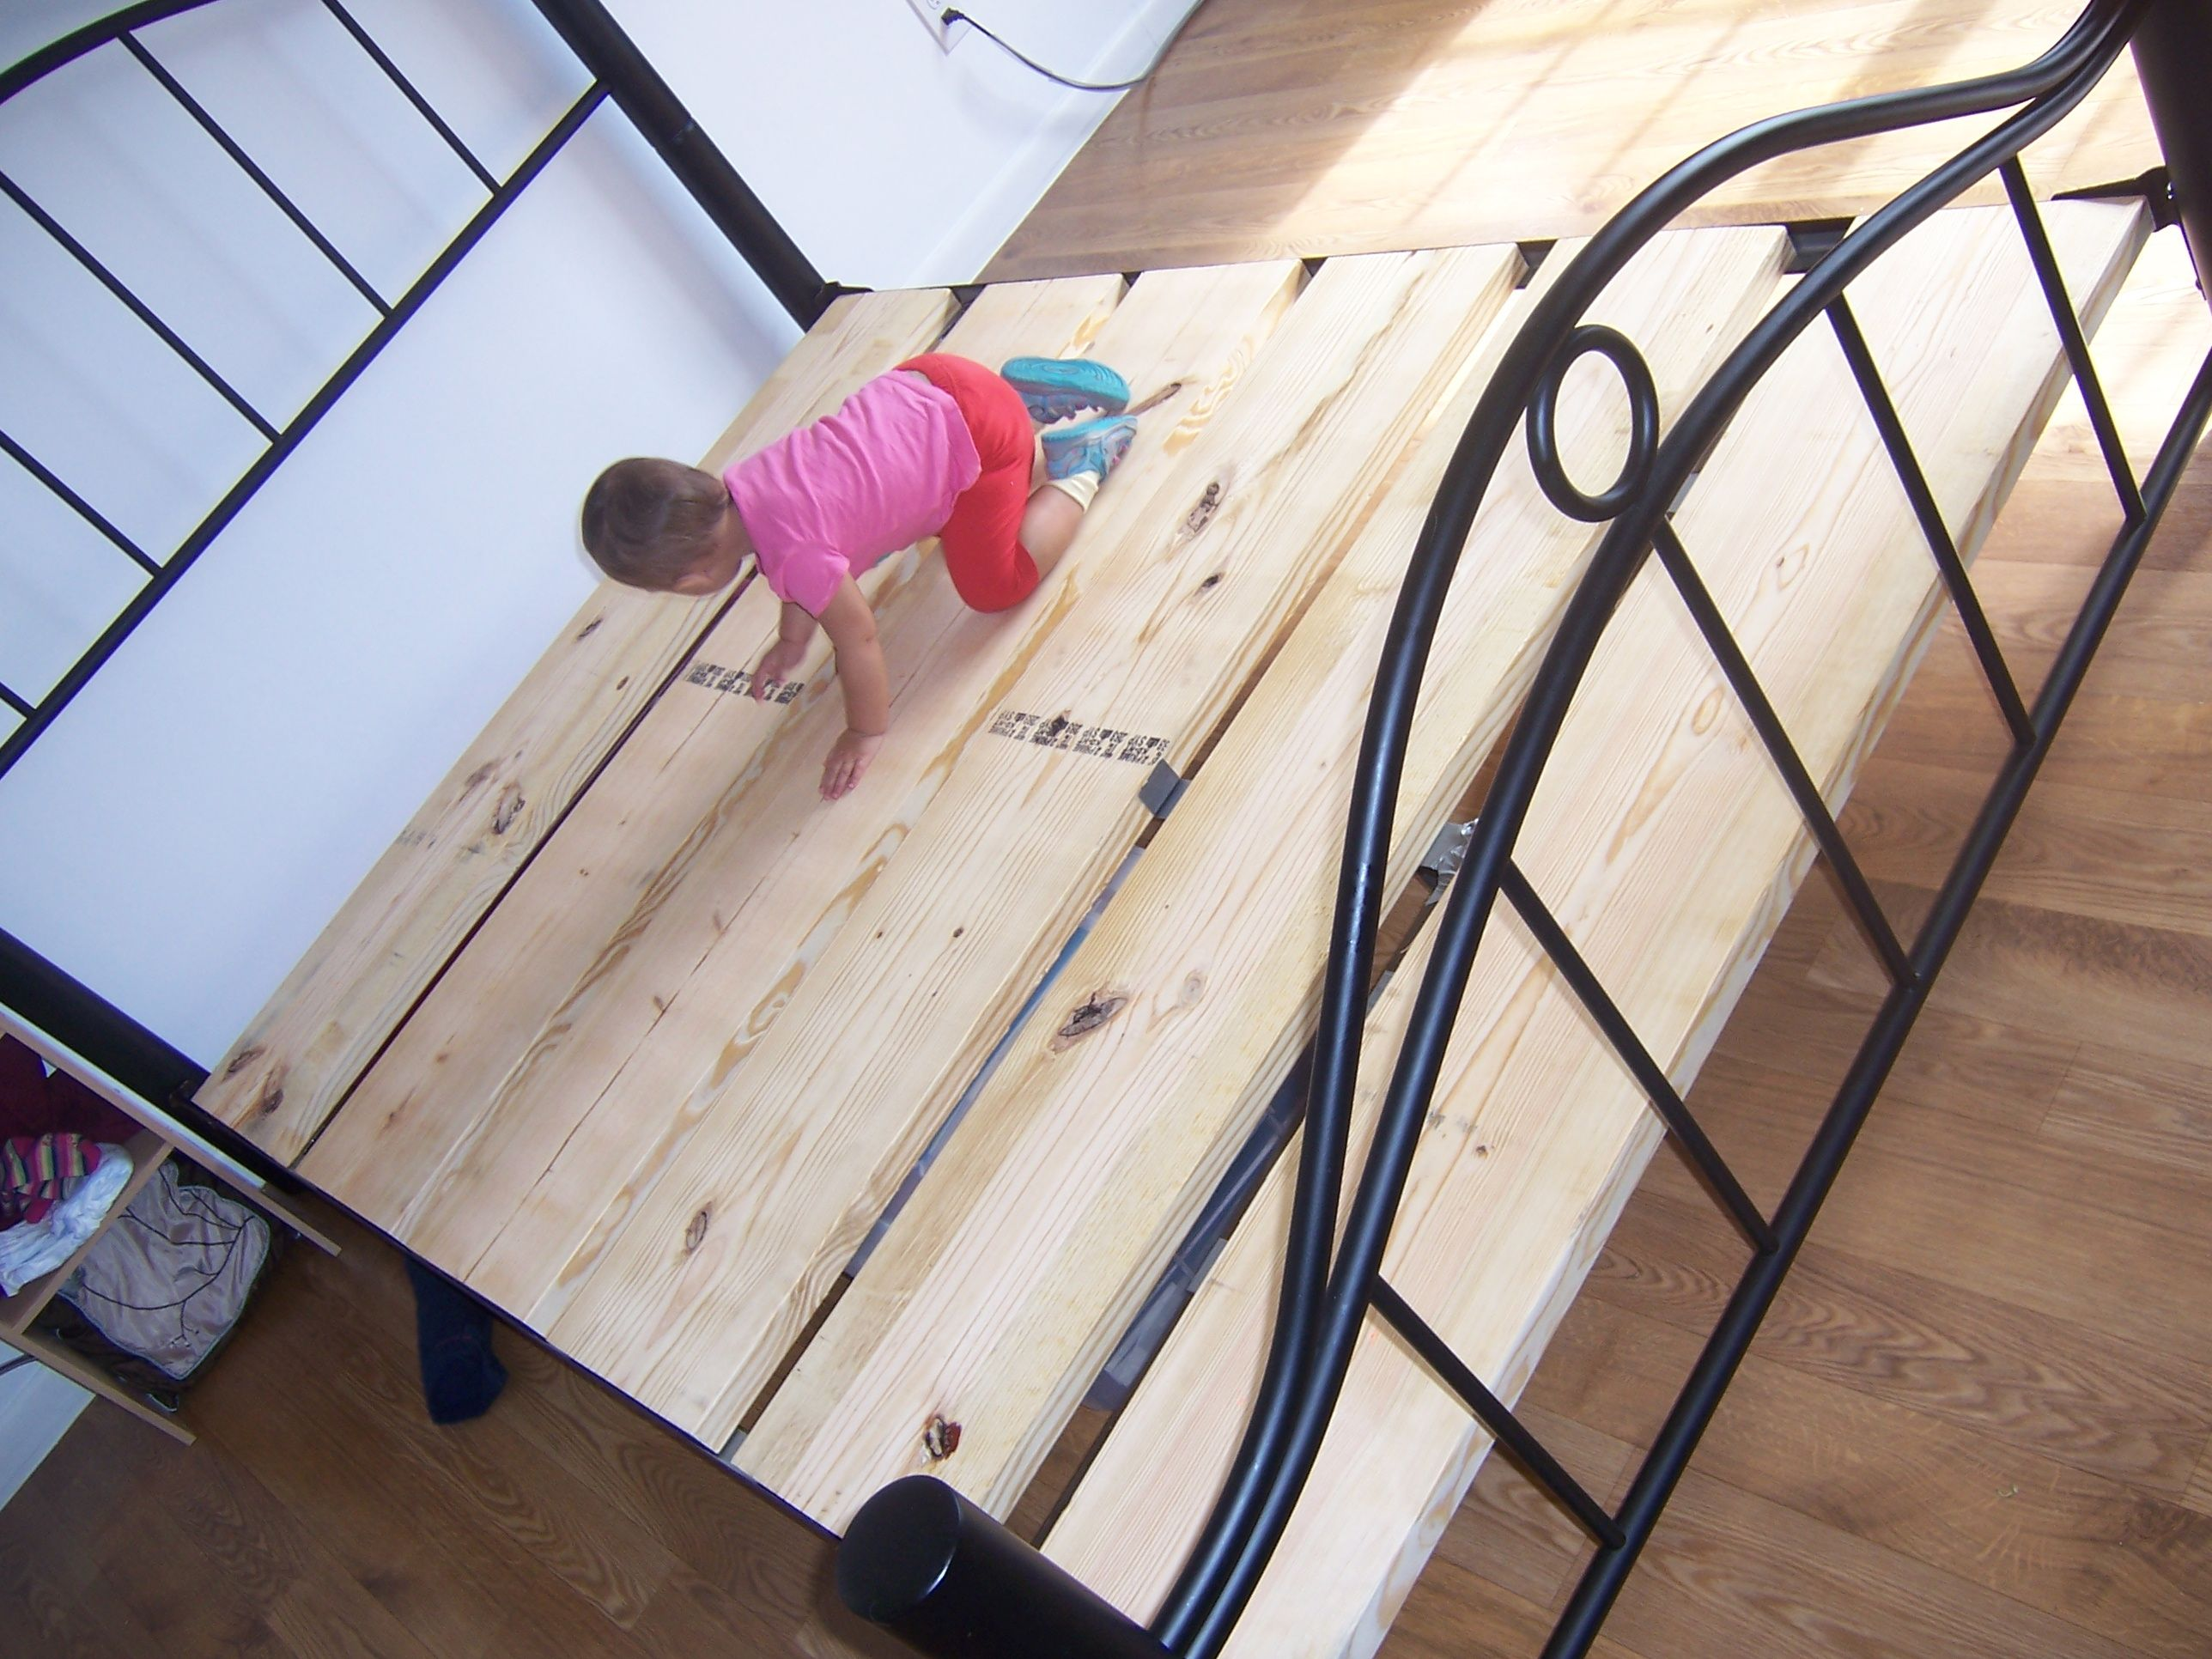 How To Make Your Own Boxspring Make Sure You Cover Your New Slats